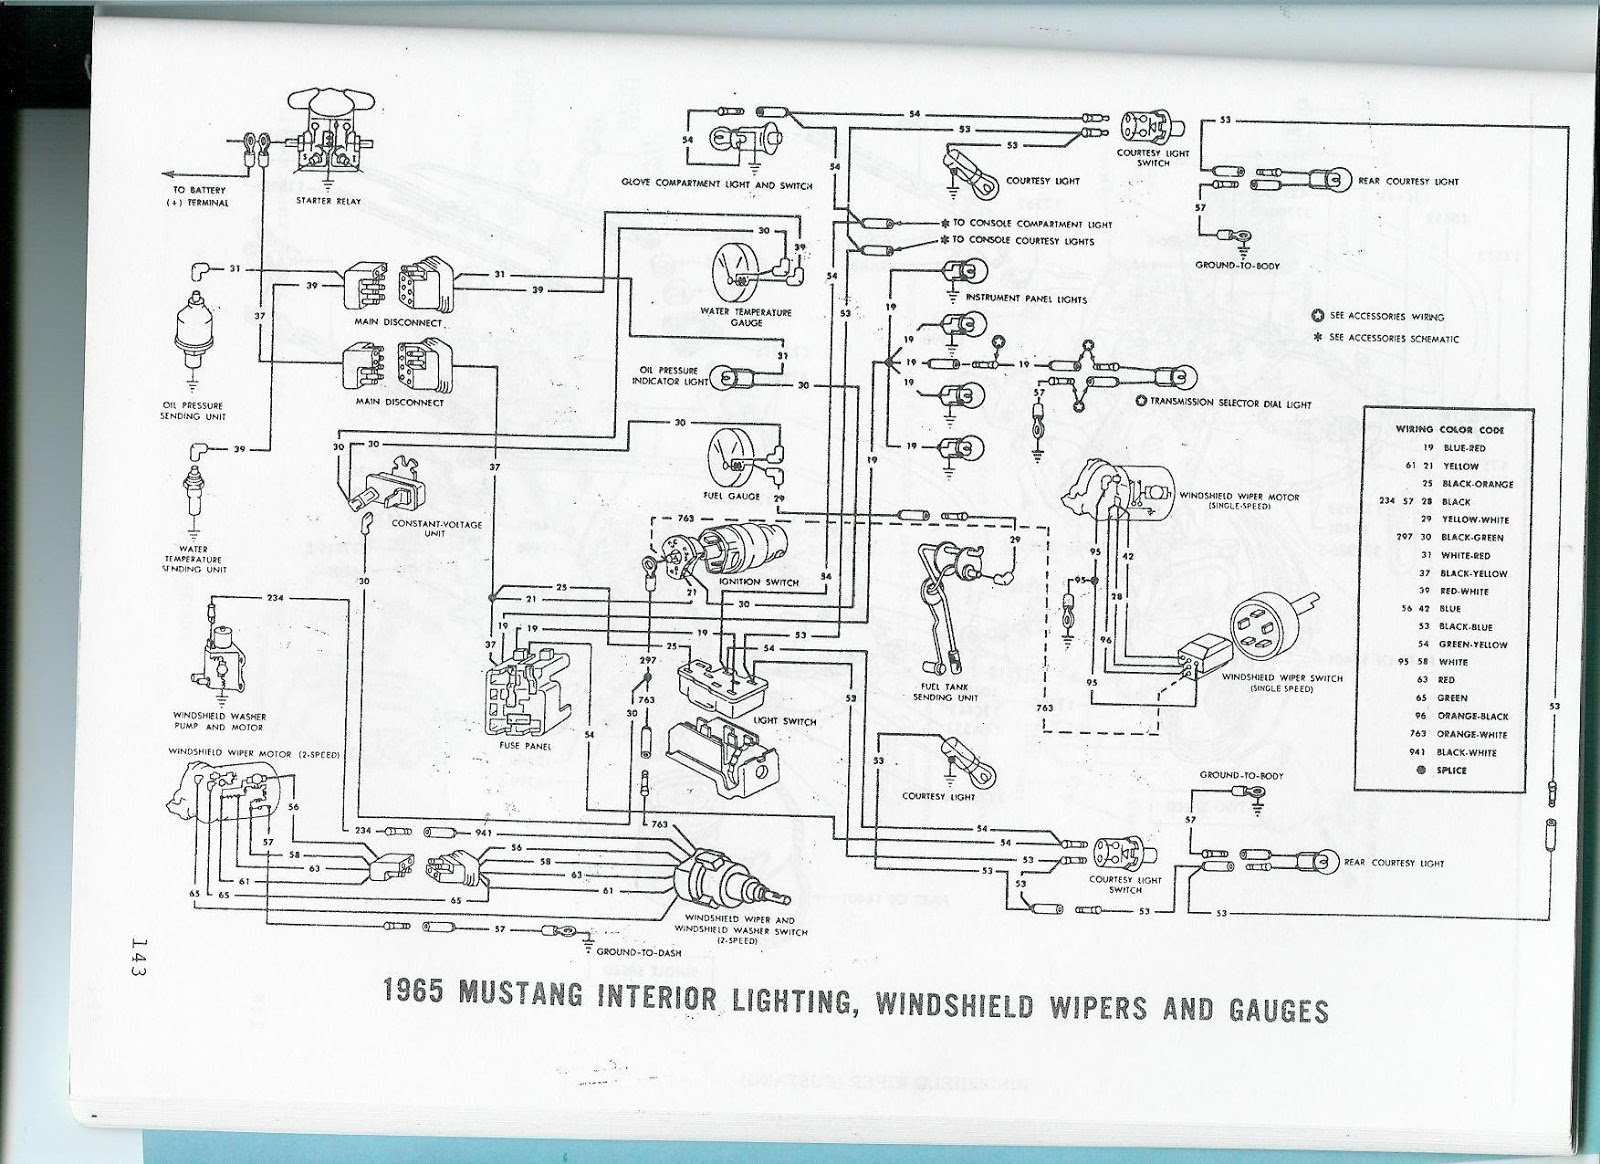 hight resolution of 1970 chevelle windshield wiper motor wiring diagram wiring library 1966 chevelle windshield wiper washer wiring diagram 65 chevelle wiper motor wiring